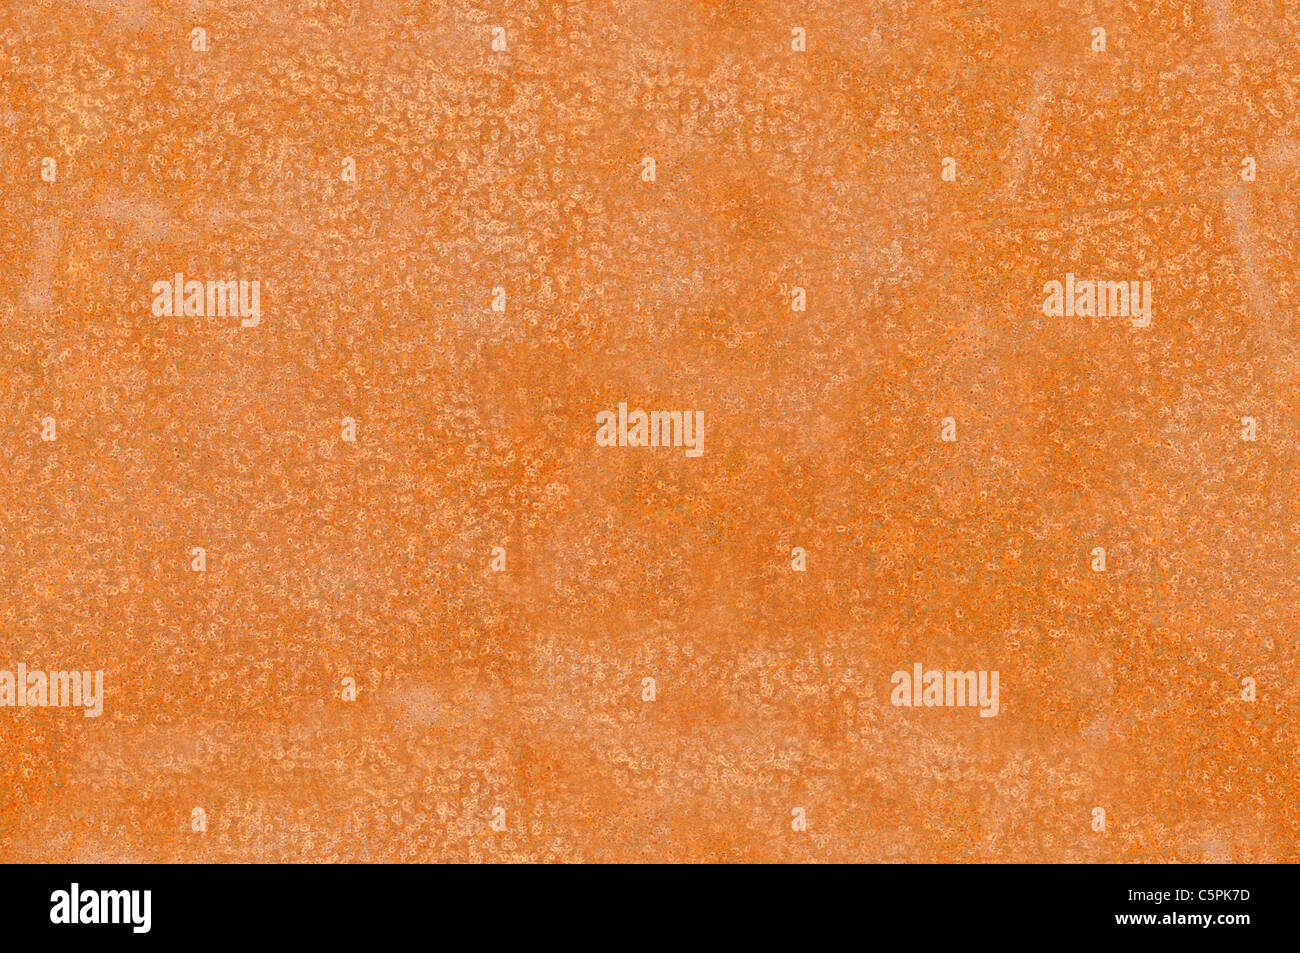 Close-up of a rusted metallic plak texture that perfectly loop horizontally and vertically - Stock Image